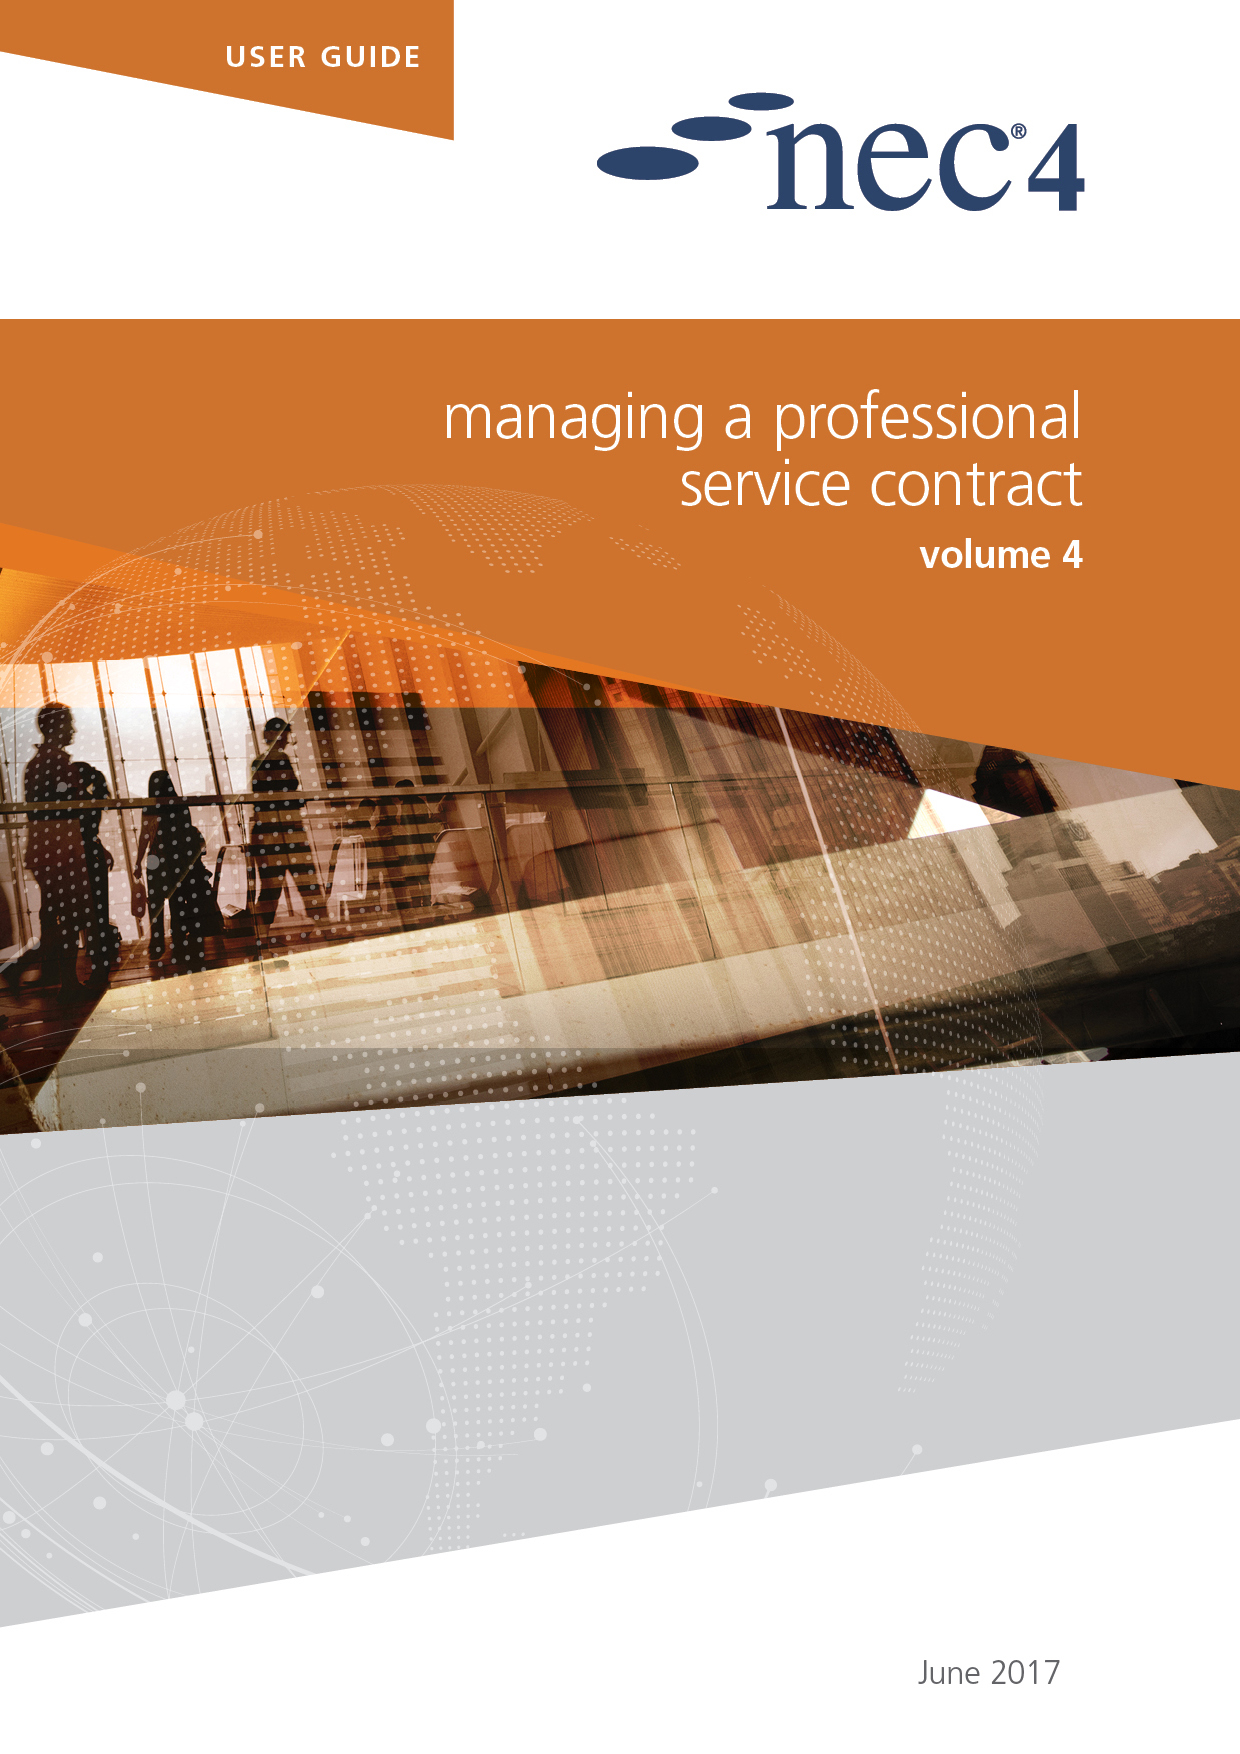 NEC4: Managing a Professional Service Contract